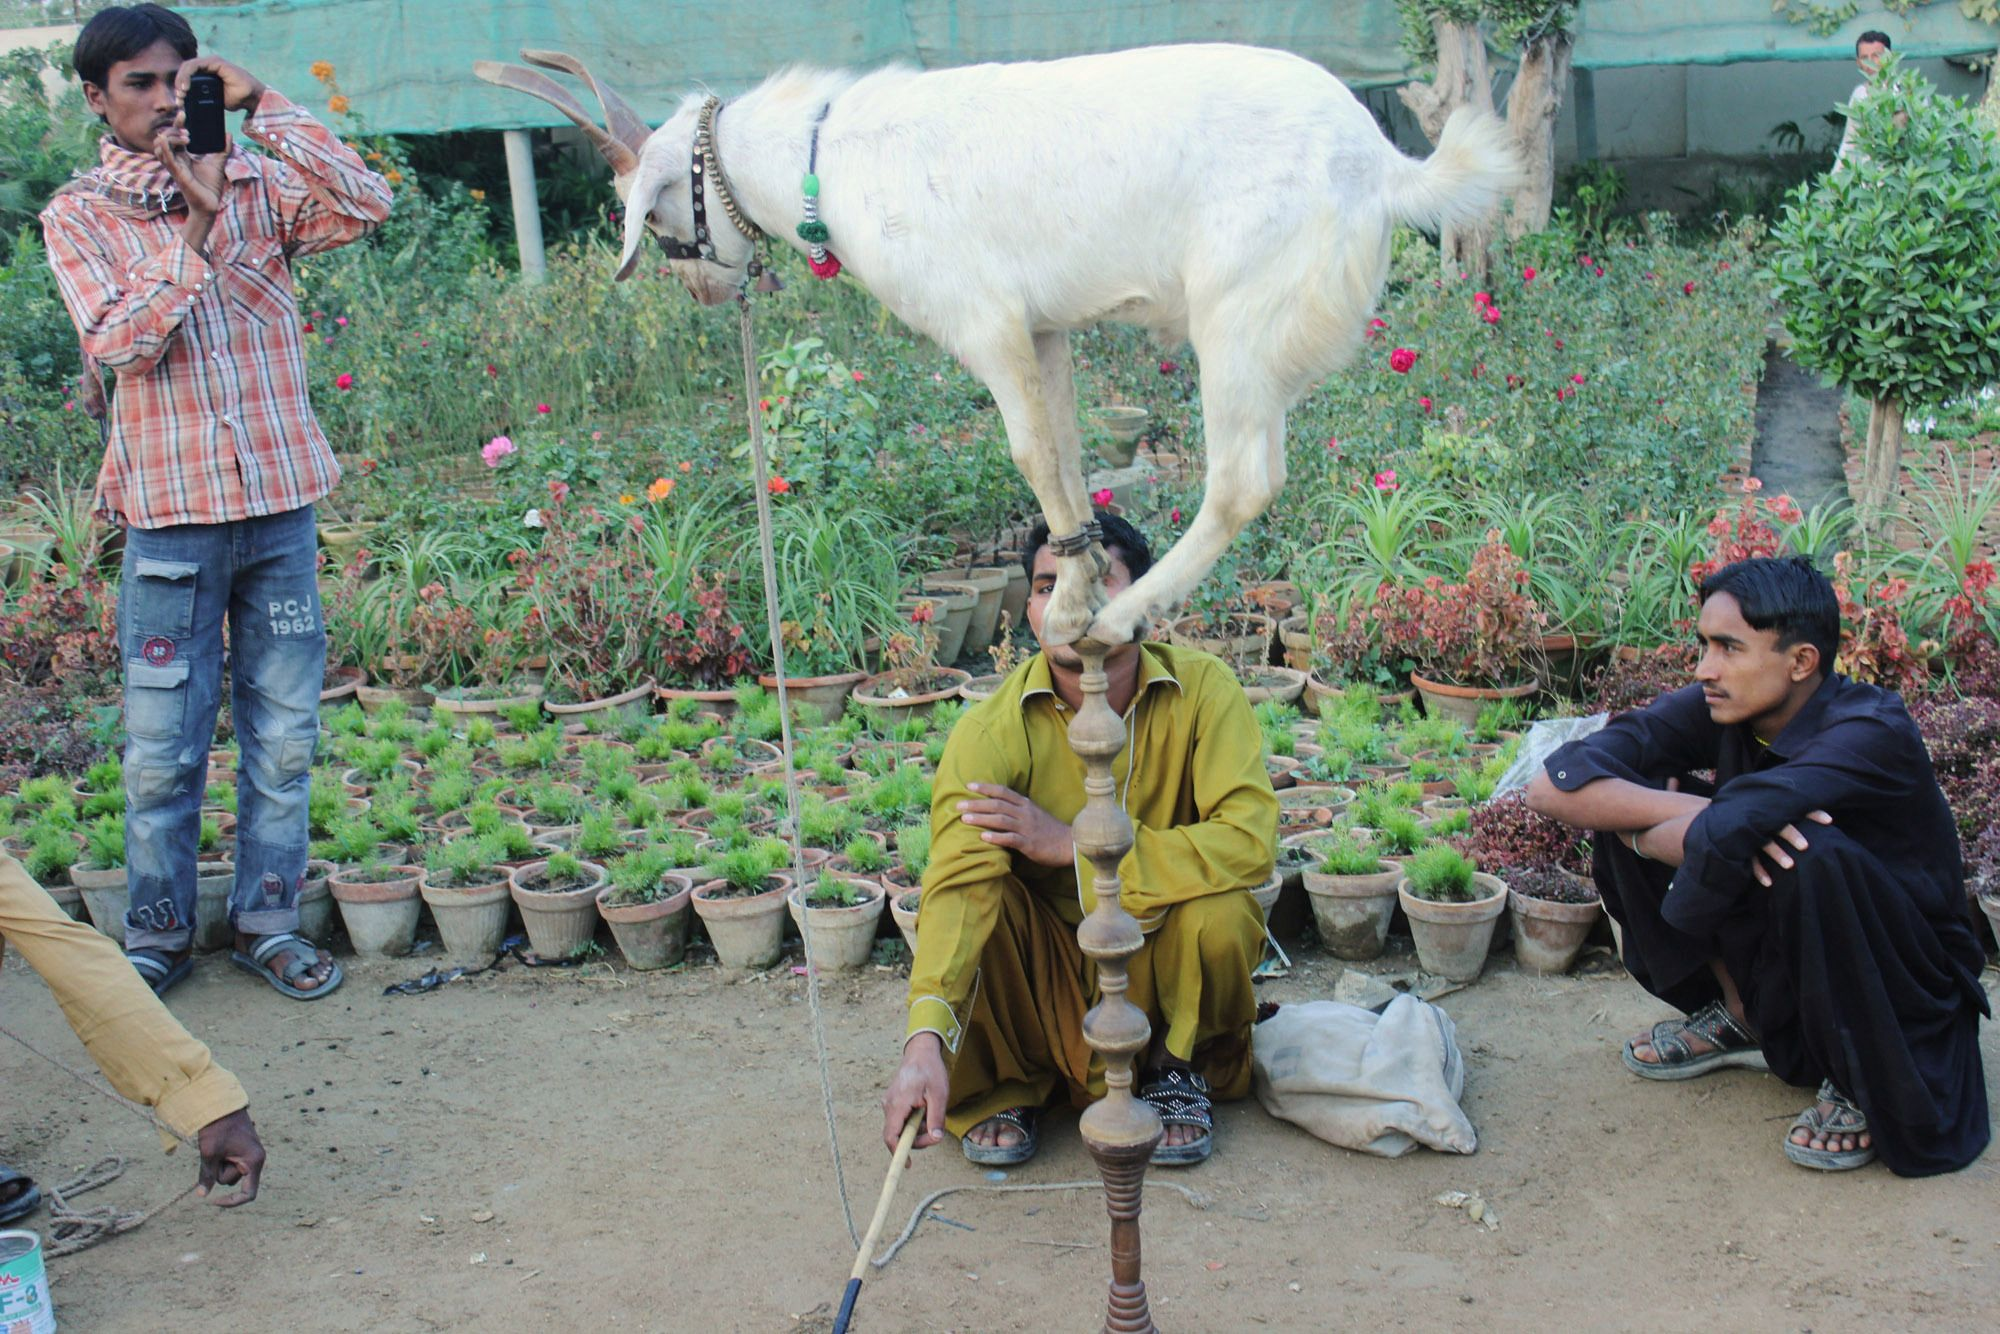 #goatvet likes this goat on the streets of Pakistan- natural behaviour that entertains